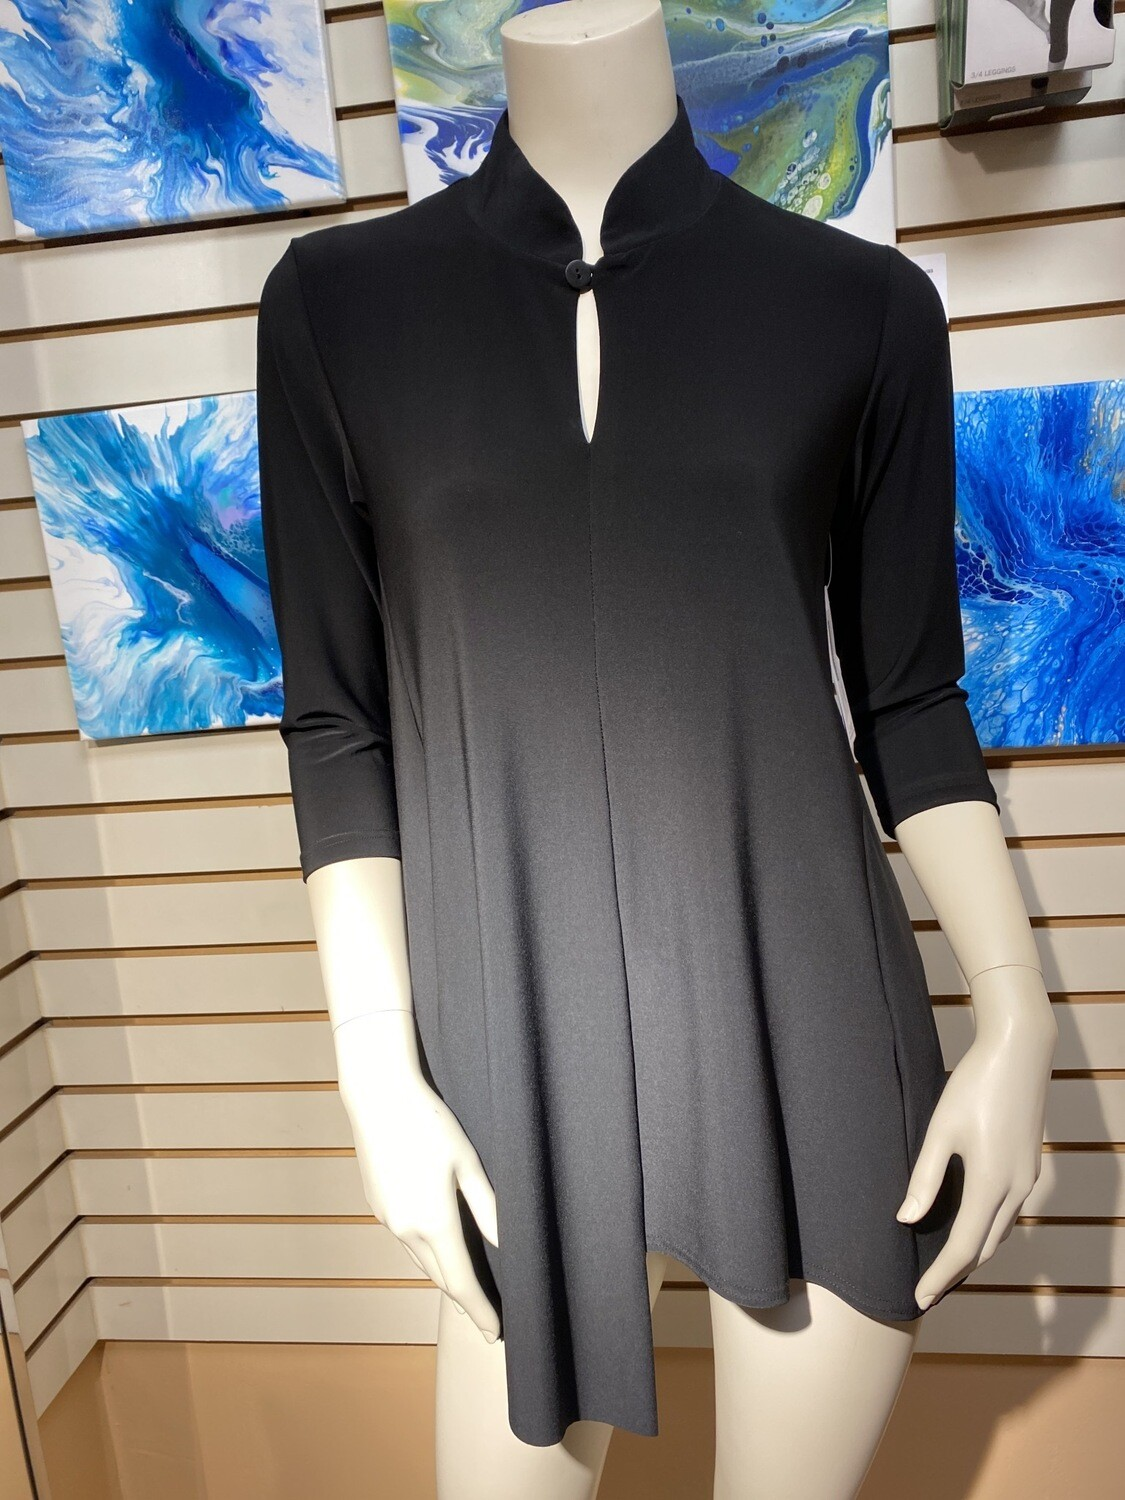 Major Deal! Sympli Double Over Top. Only One. Size 6 Black.